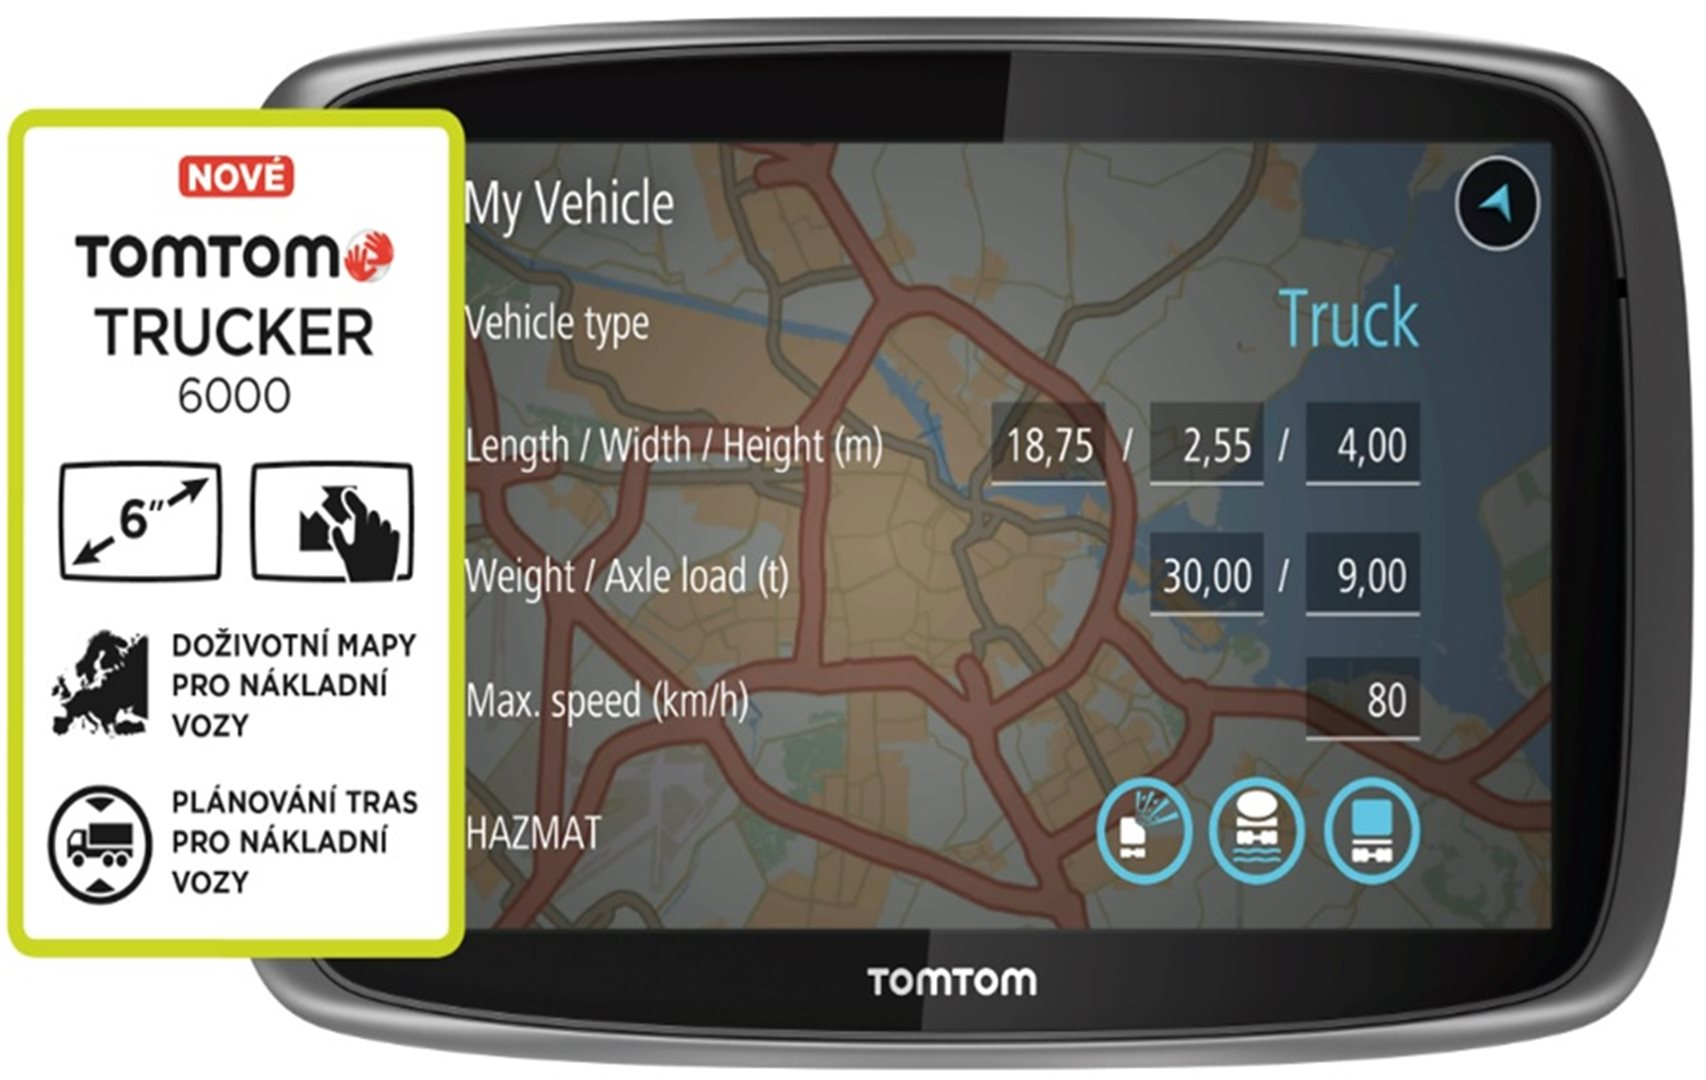 tomtom trucker 6000 lifetime mapy t s bohemia. Black Bedroom Furniture Sets. Home Design Ideas